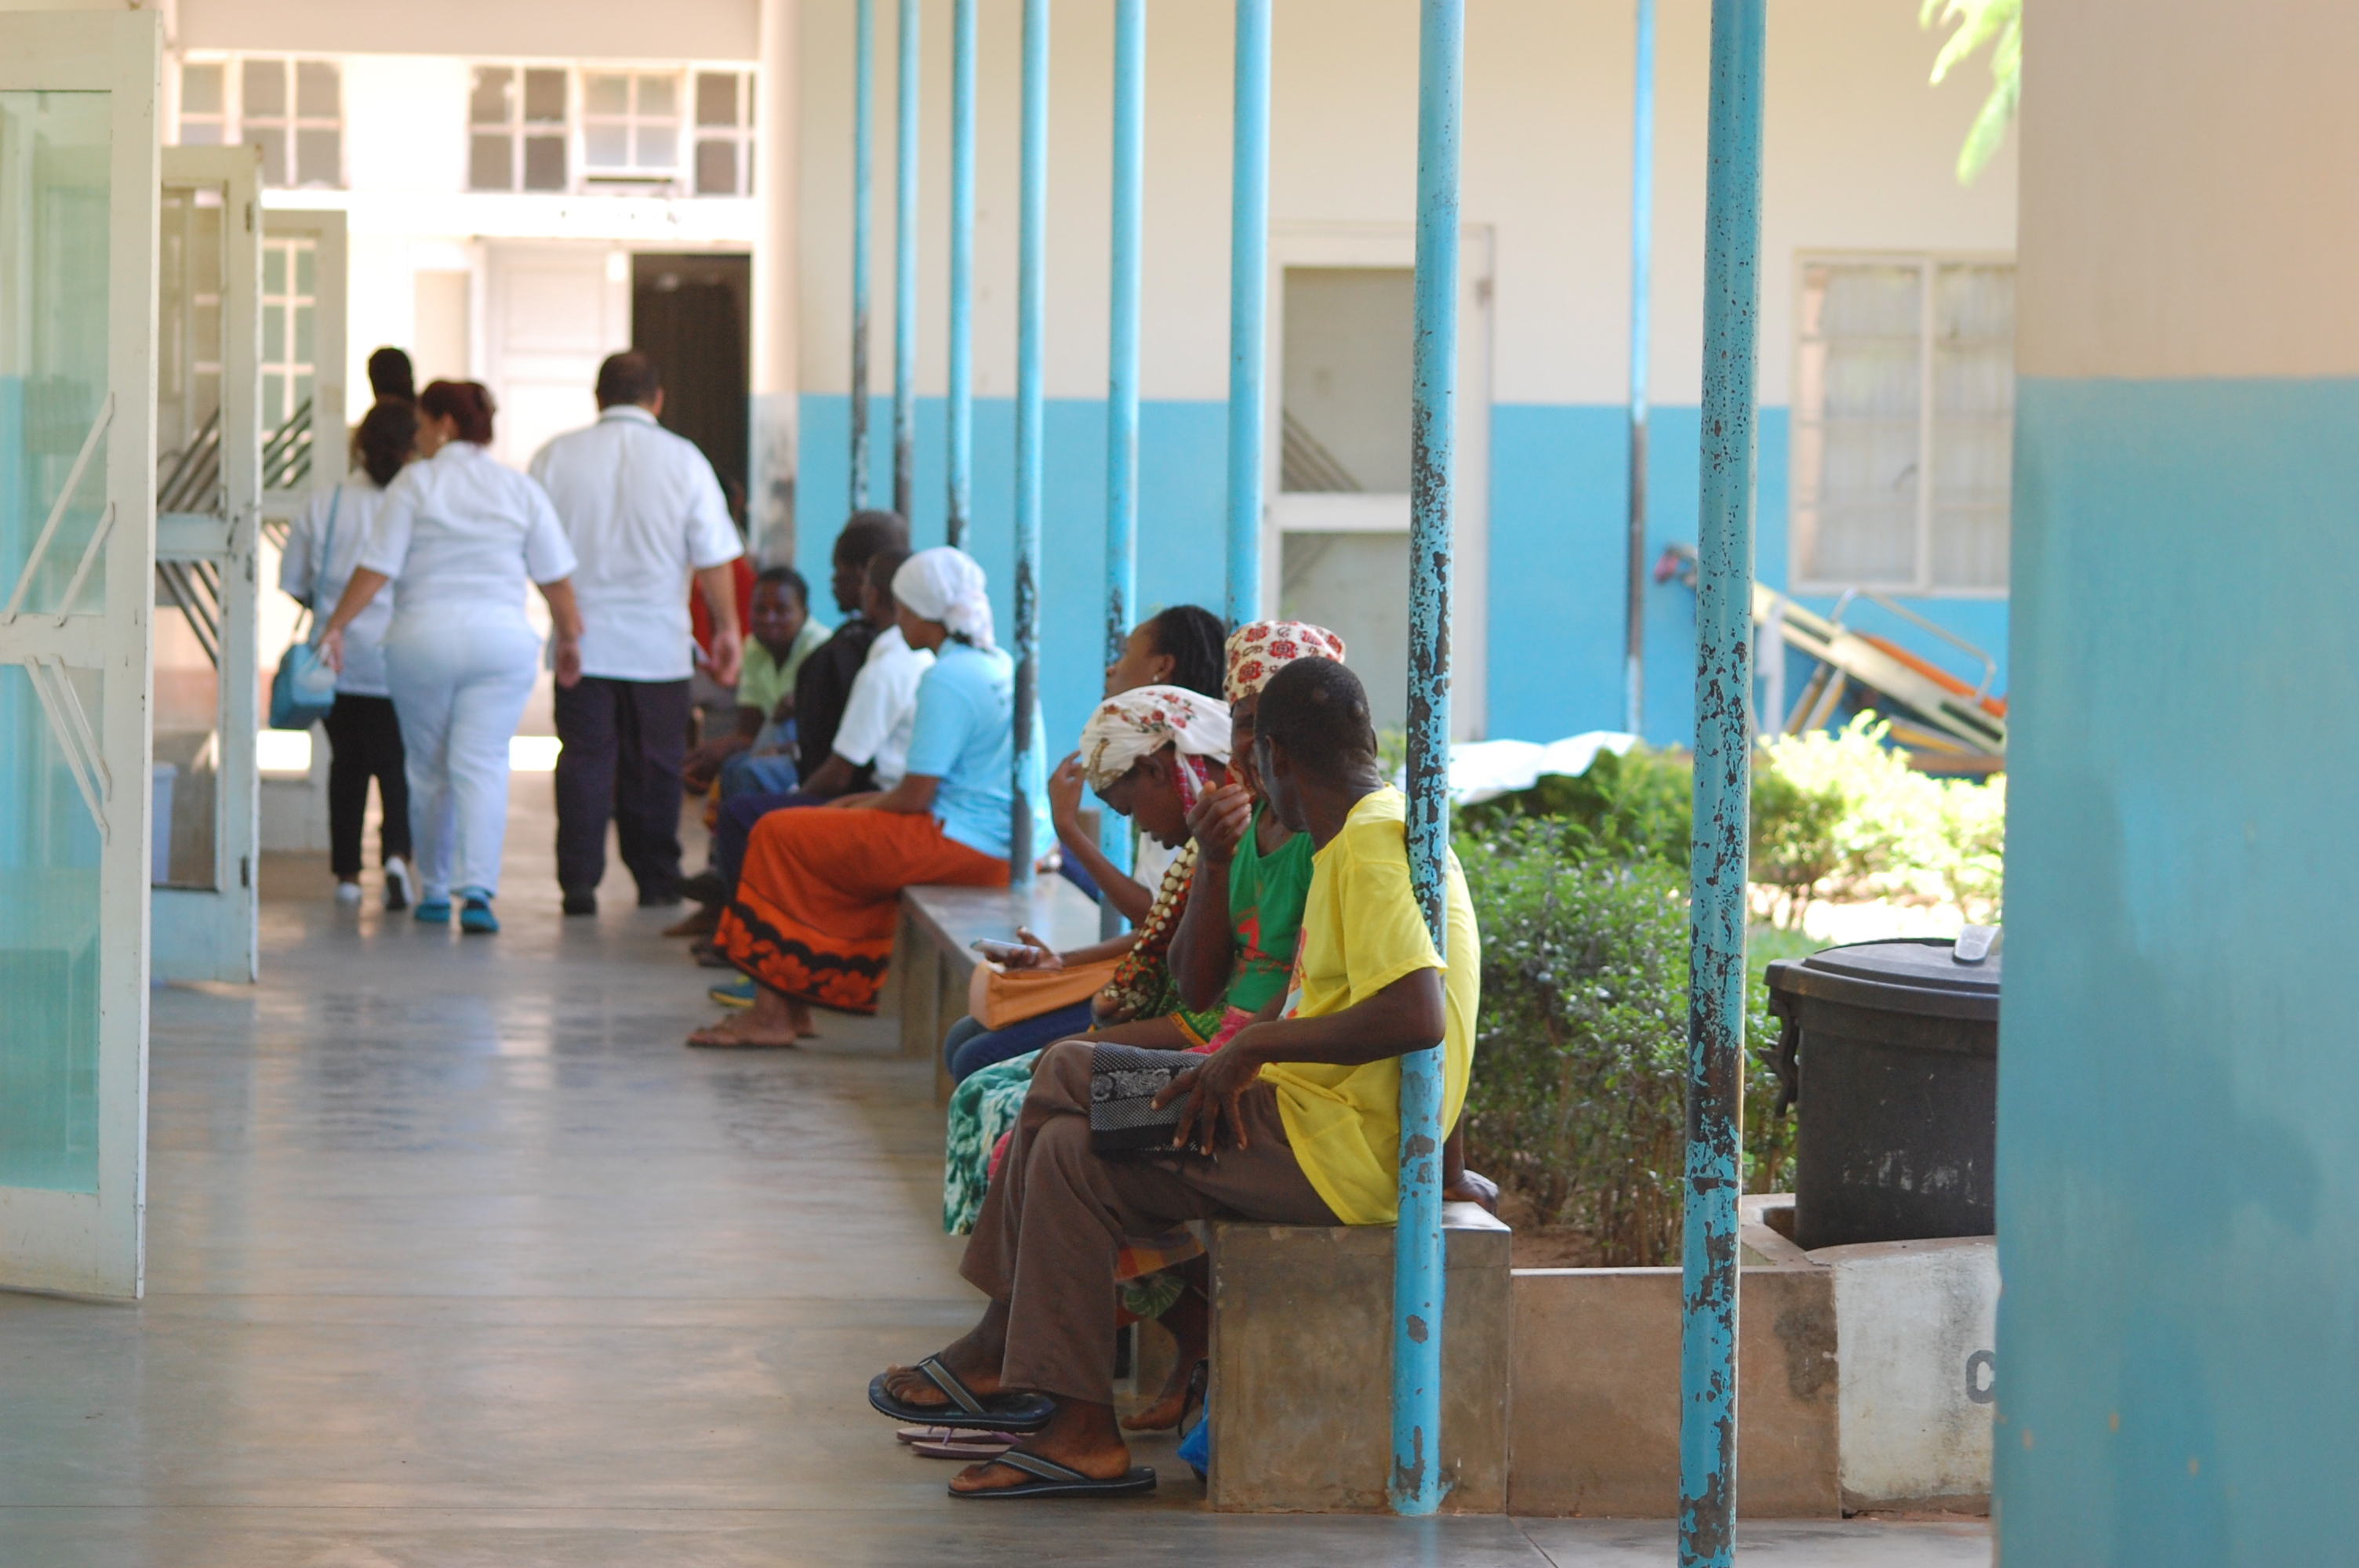 Men and women sit outside the maternity ward of the Chicuque Rural Hospital in Chicuque, Mozambique. Photo by Keeton Bigham-Tsai, Connectional Table.